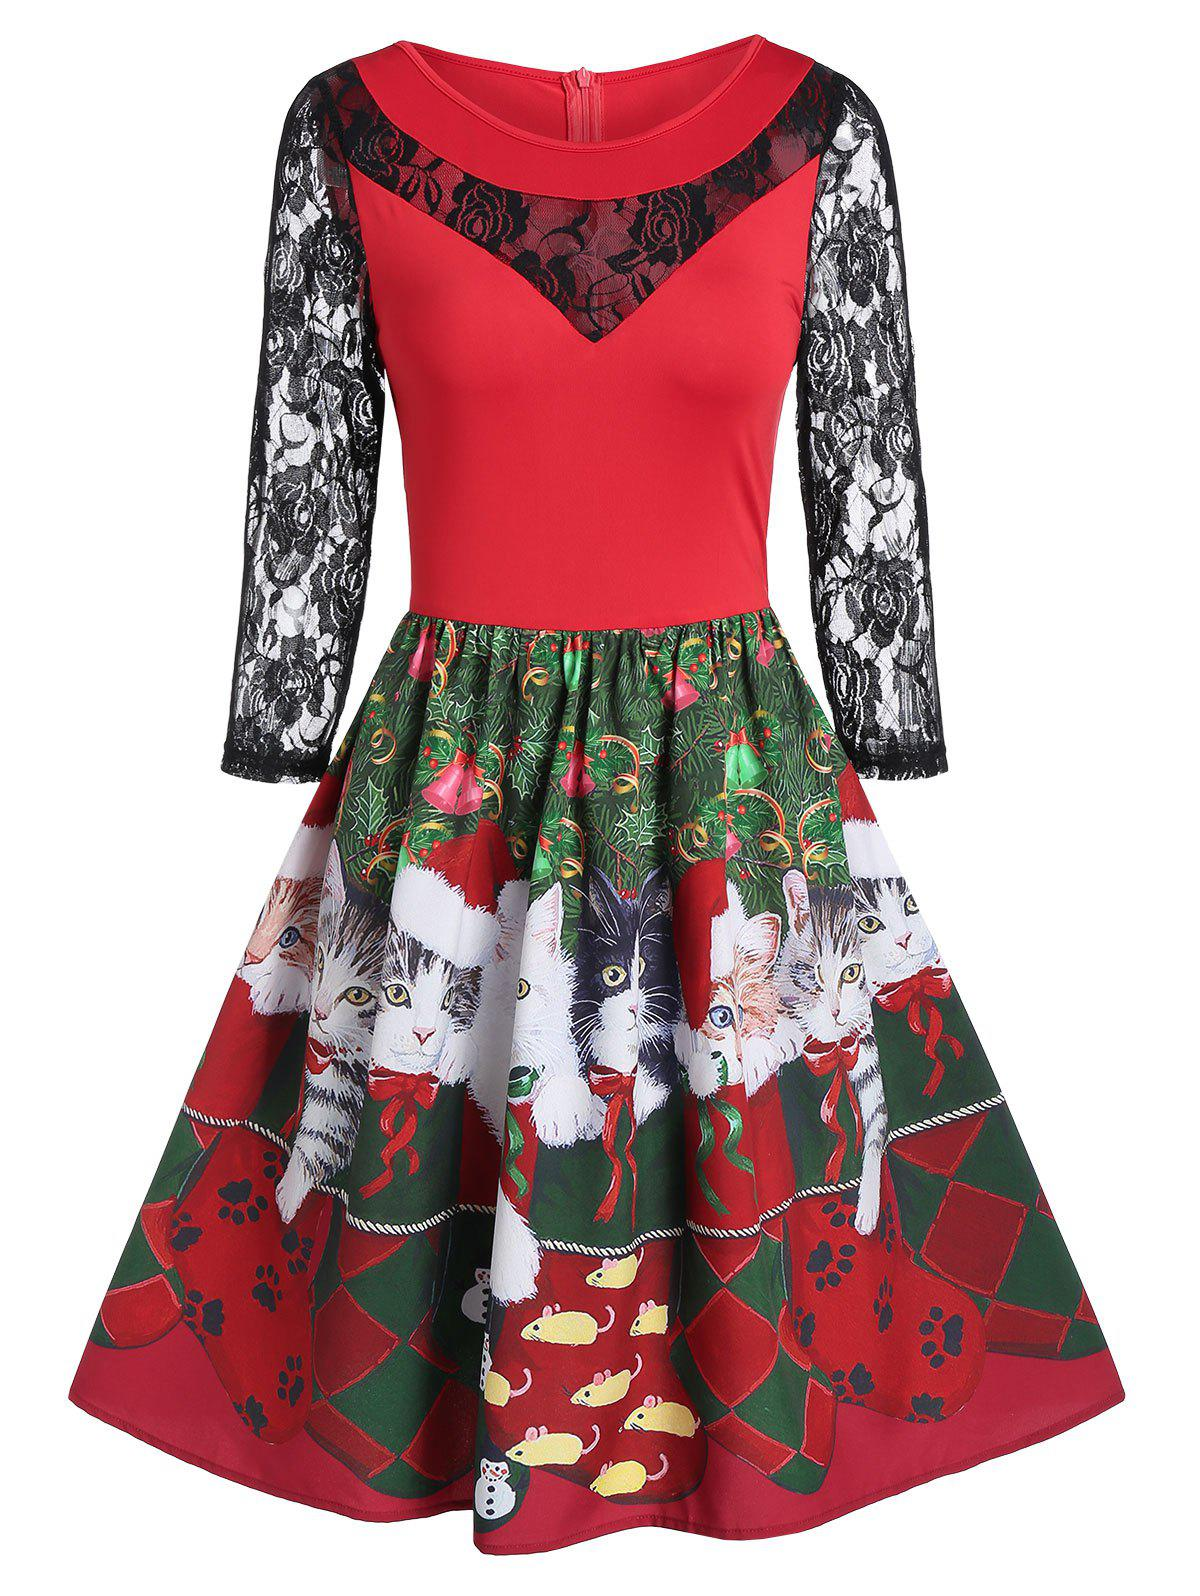 Trendy Lace Insert Fit And Flare Animal Print Christmas Dress